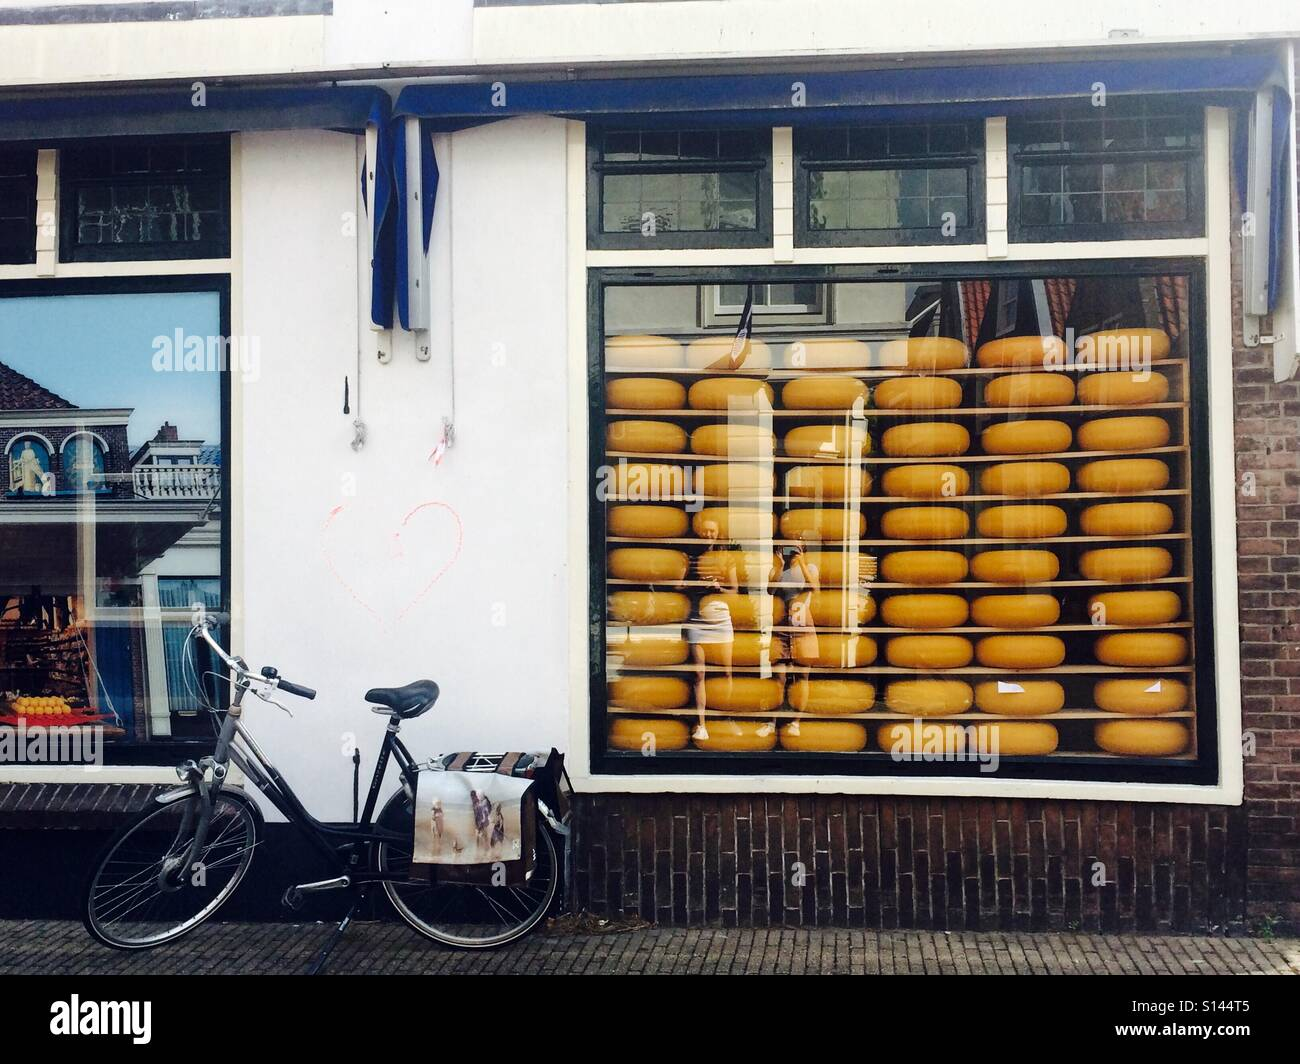 Edam cheese stacked in shop window in Edam, Netherlands. A bike rests against the wall. Yellow wax on the Edam is - Stock Image